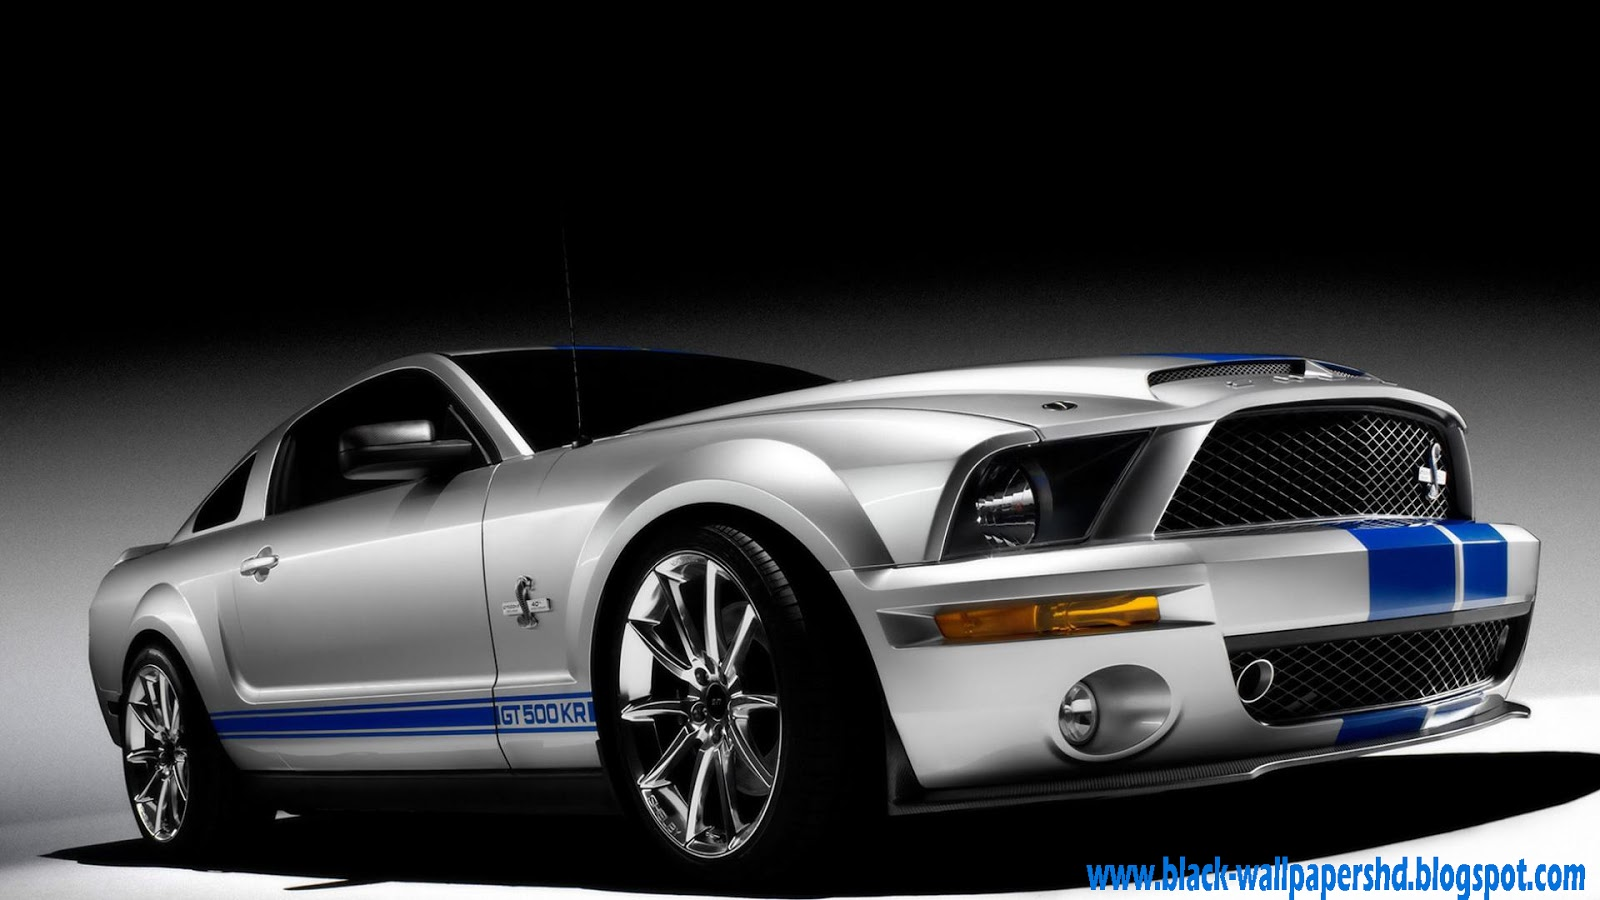 Top 10 Best Car Wallpapers HD   Black Wallpapers HD Part 1 1600x900